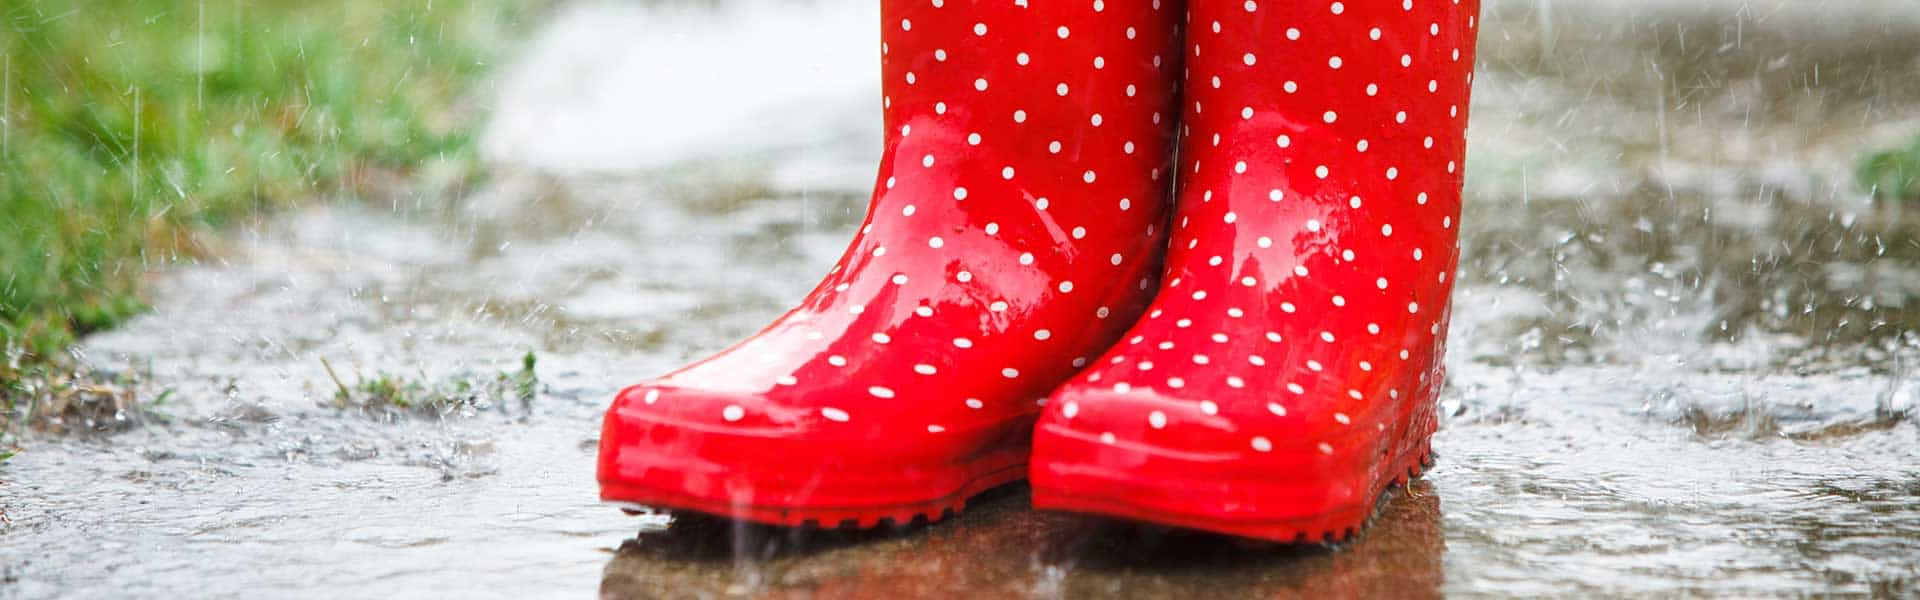 Best Rain Boots For Women 2018 – Buying Guide and Boot Reviews